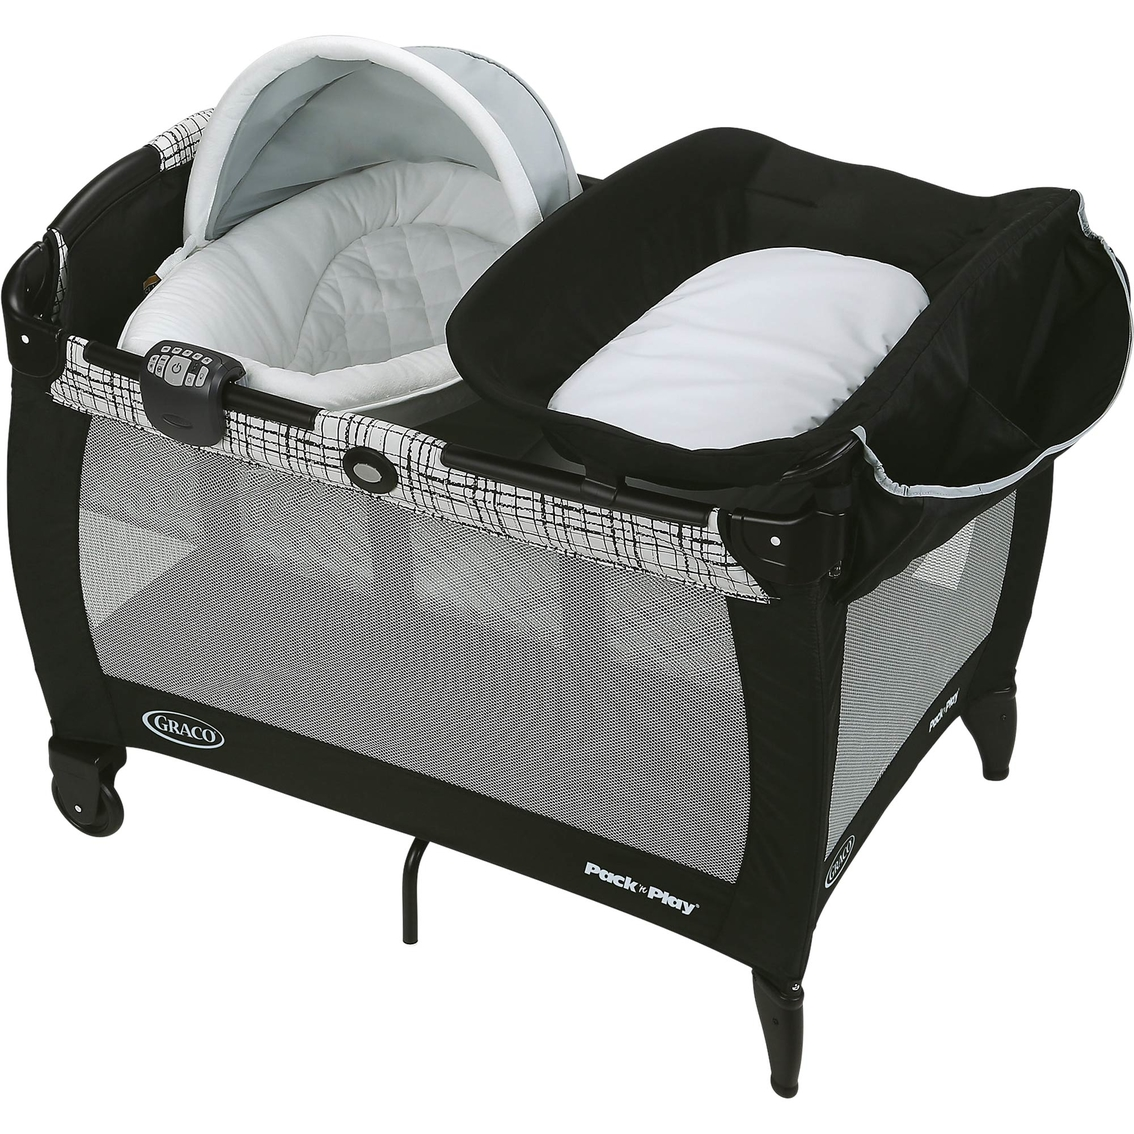 ce01445d8bf Graco Pack  n Play Playard Newborn Napper and Bassinet with Soothe Surround